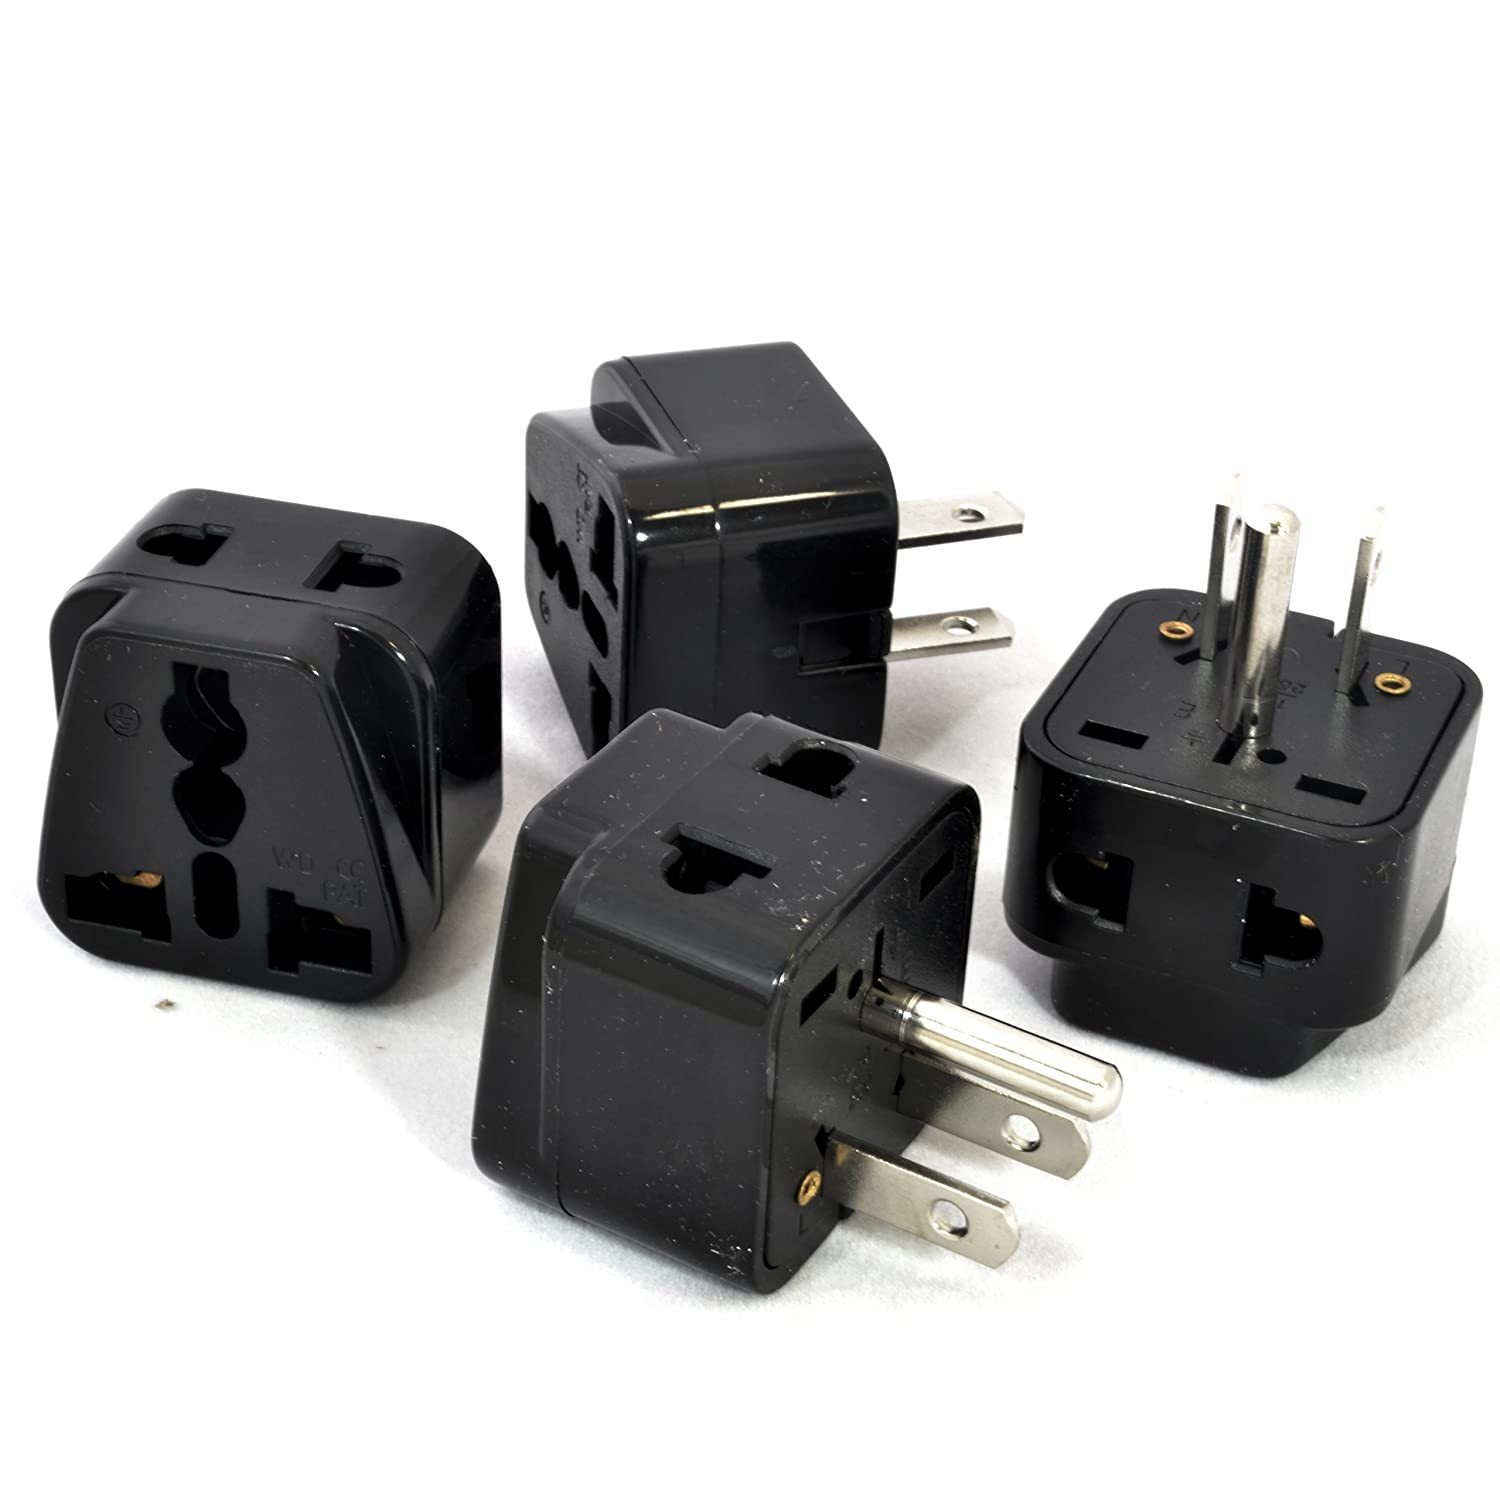 Amazon.com: OREI 2 in 1 Universal to Grounded USA Adapter Plug (Type ...